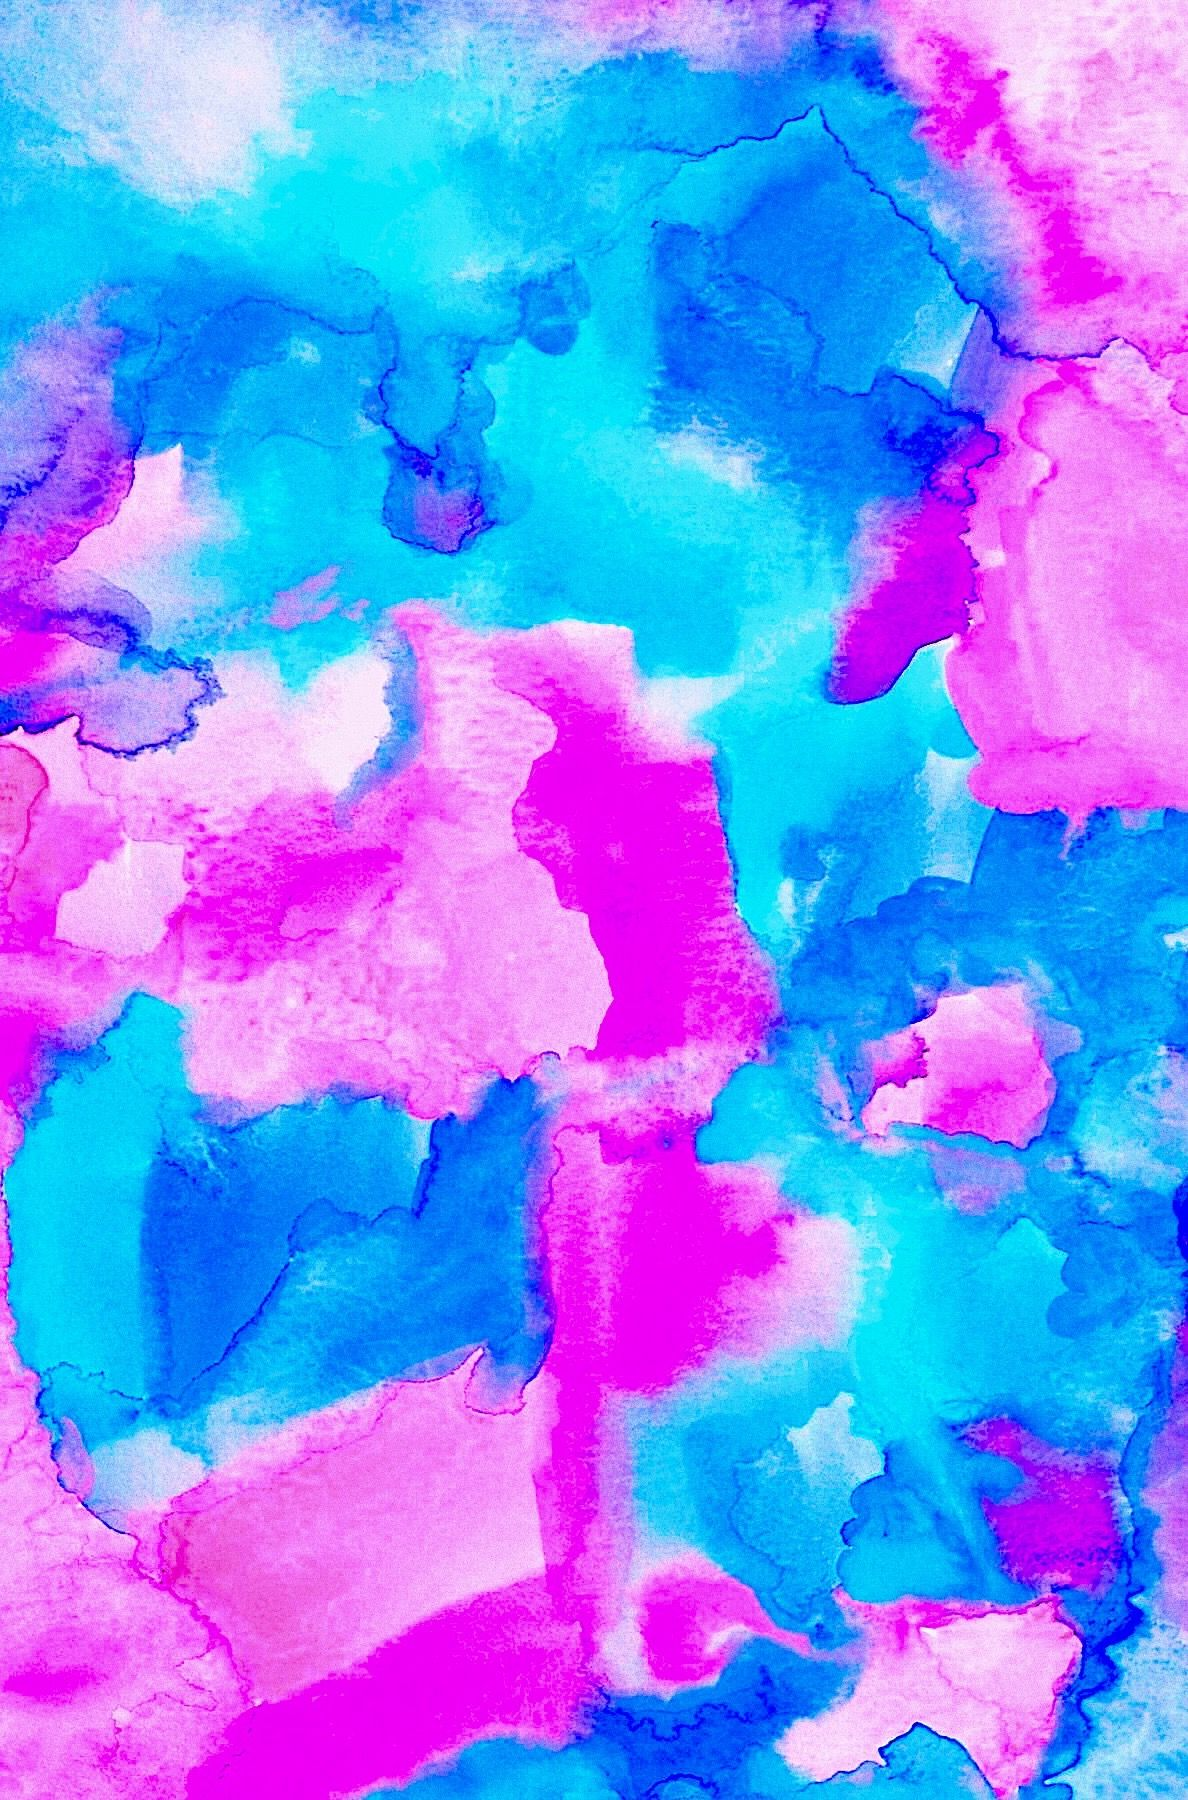 Pin by ashley on wallpapers Ipad wallpaper watercolor